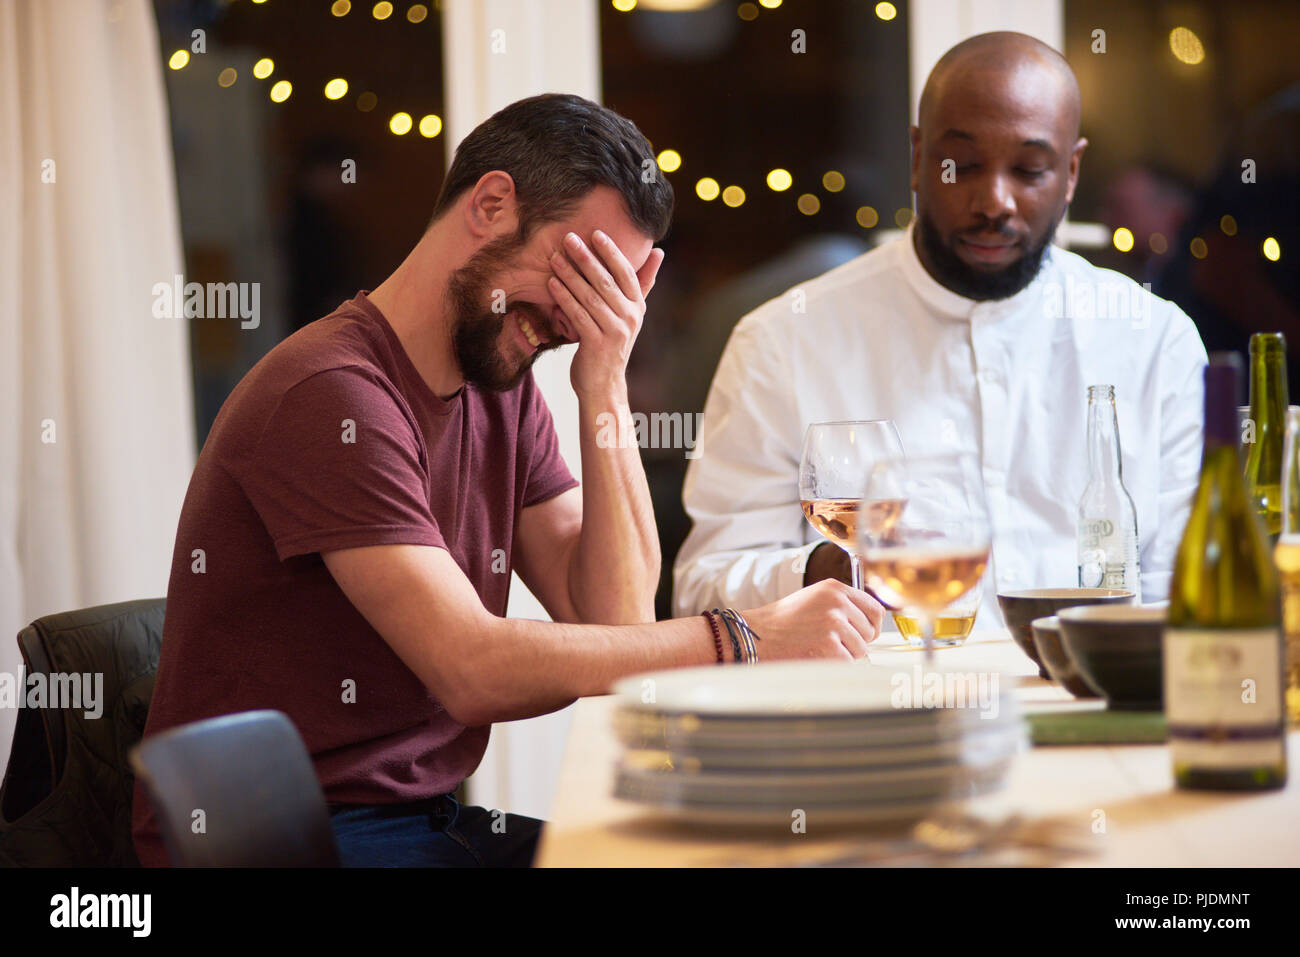 Friend laughing at dinner party - Stock Image